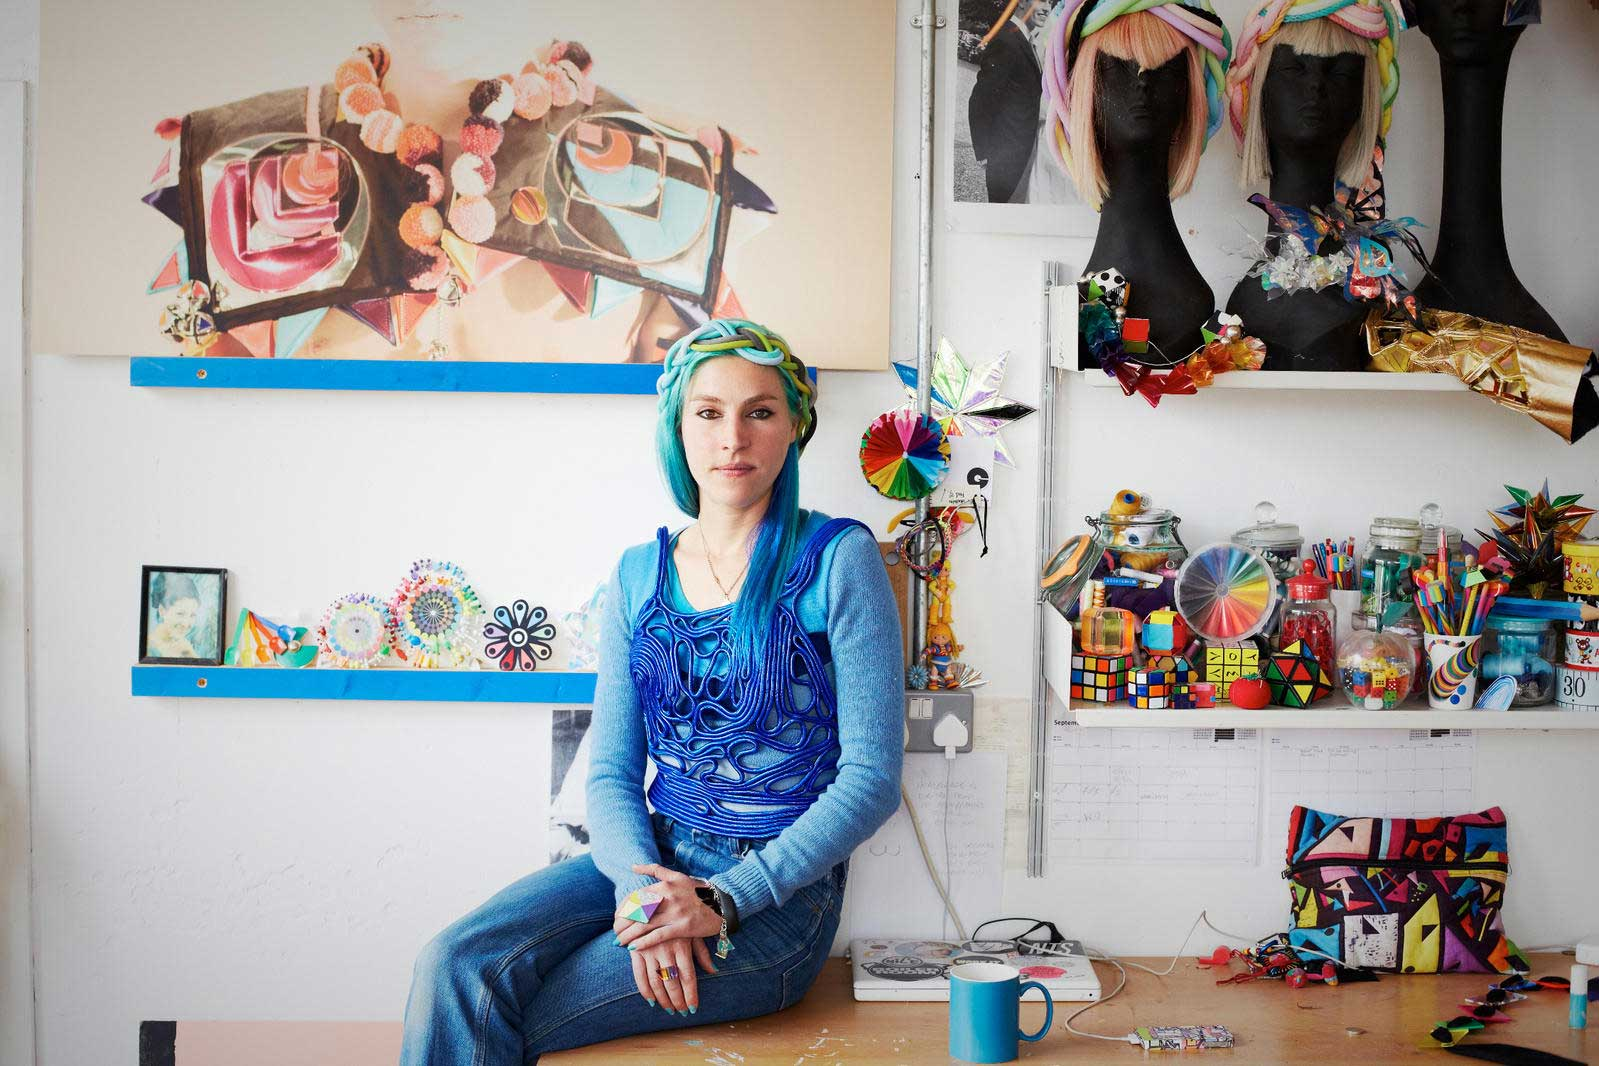 Fred in her studio. Photographer: Jenny Lewis.